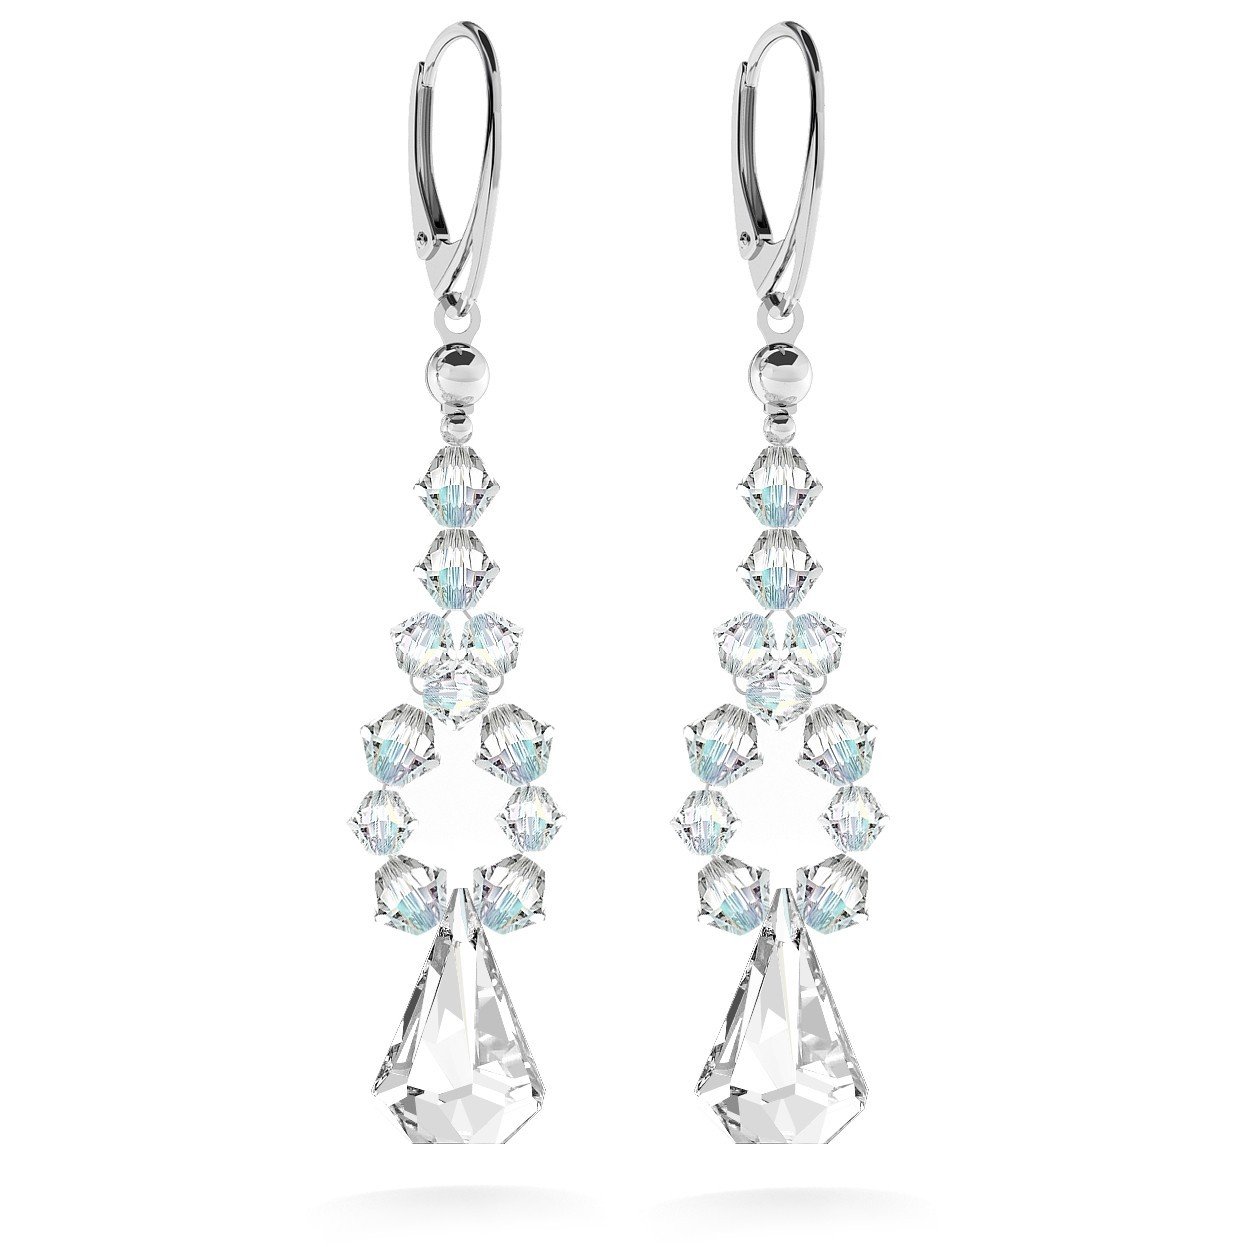 Earrings with swarovski crystals, wedding jewellery - model 1